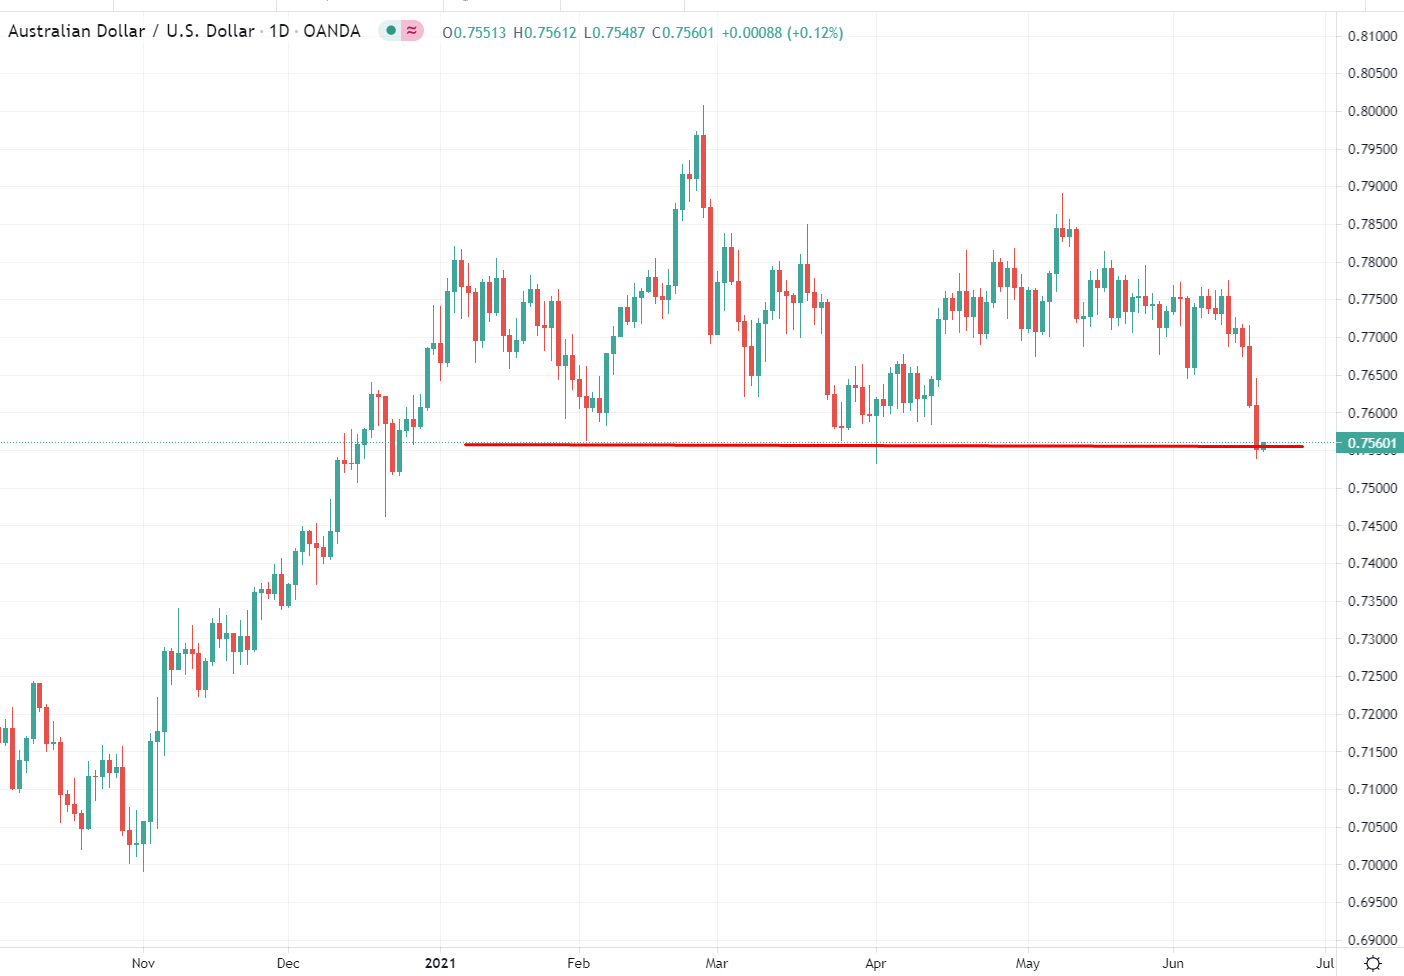 AUD/USD technical analysts will be eyeing Friday's close